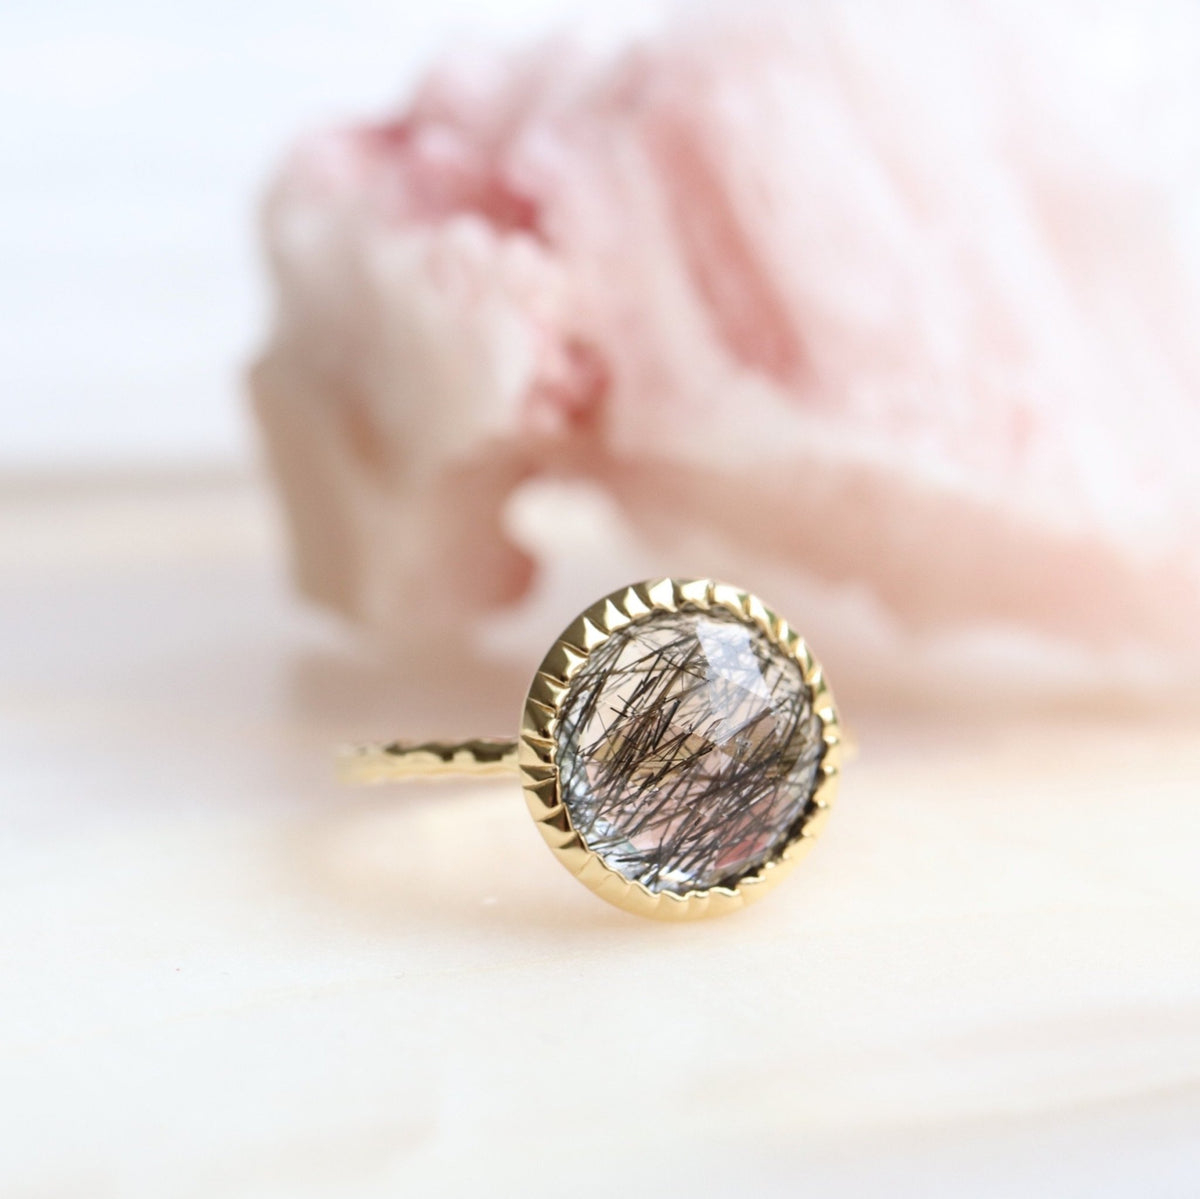 LEGACY RING - BLACK RUTILE QUARTZ & GOLD - SO PRETTY CARA COTTER